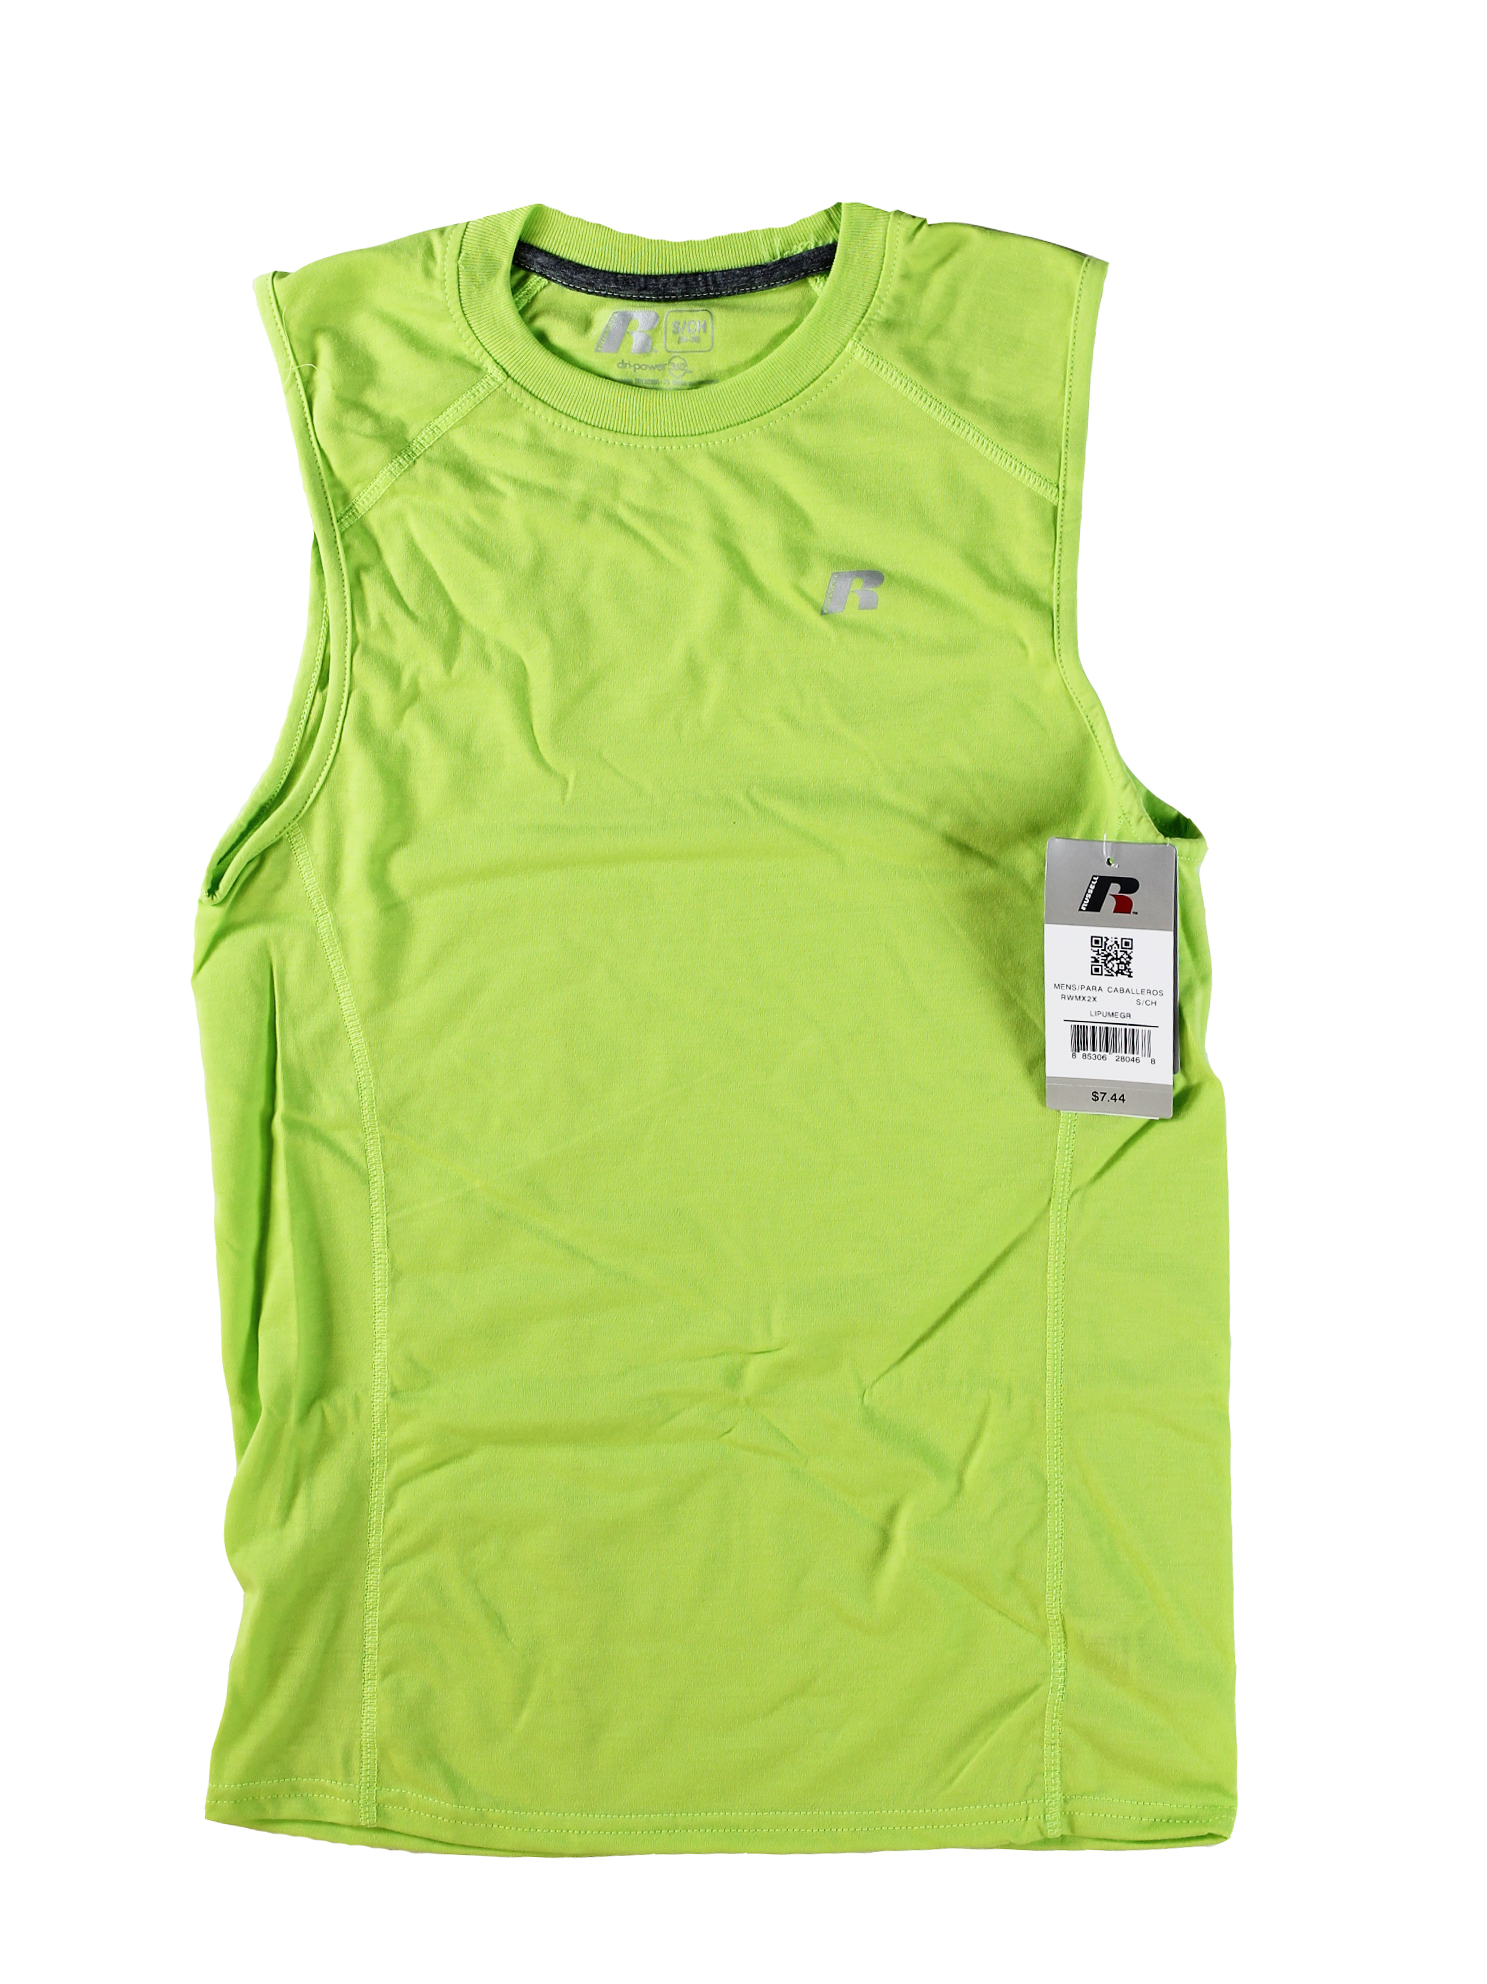 8b397209f460f RG Riley Wholesale Off Price Clothing   Closeout Apparel